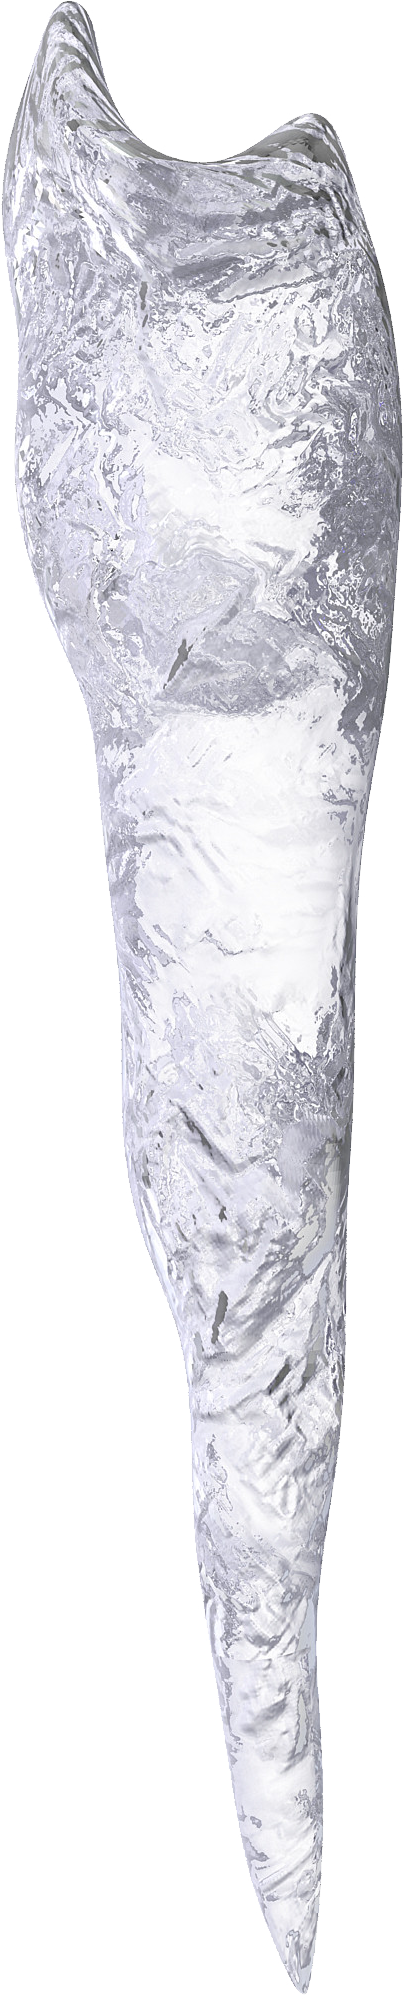 Foreign-looking Natural Thick Icicle Photo image #48593